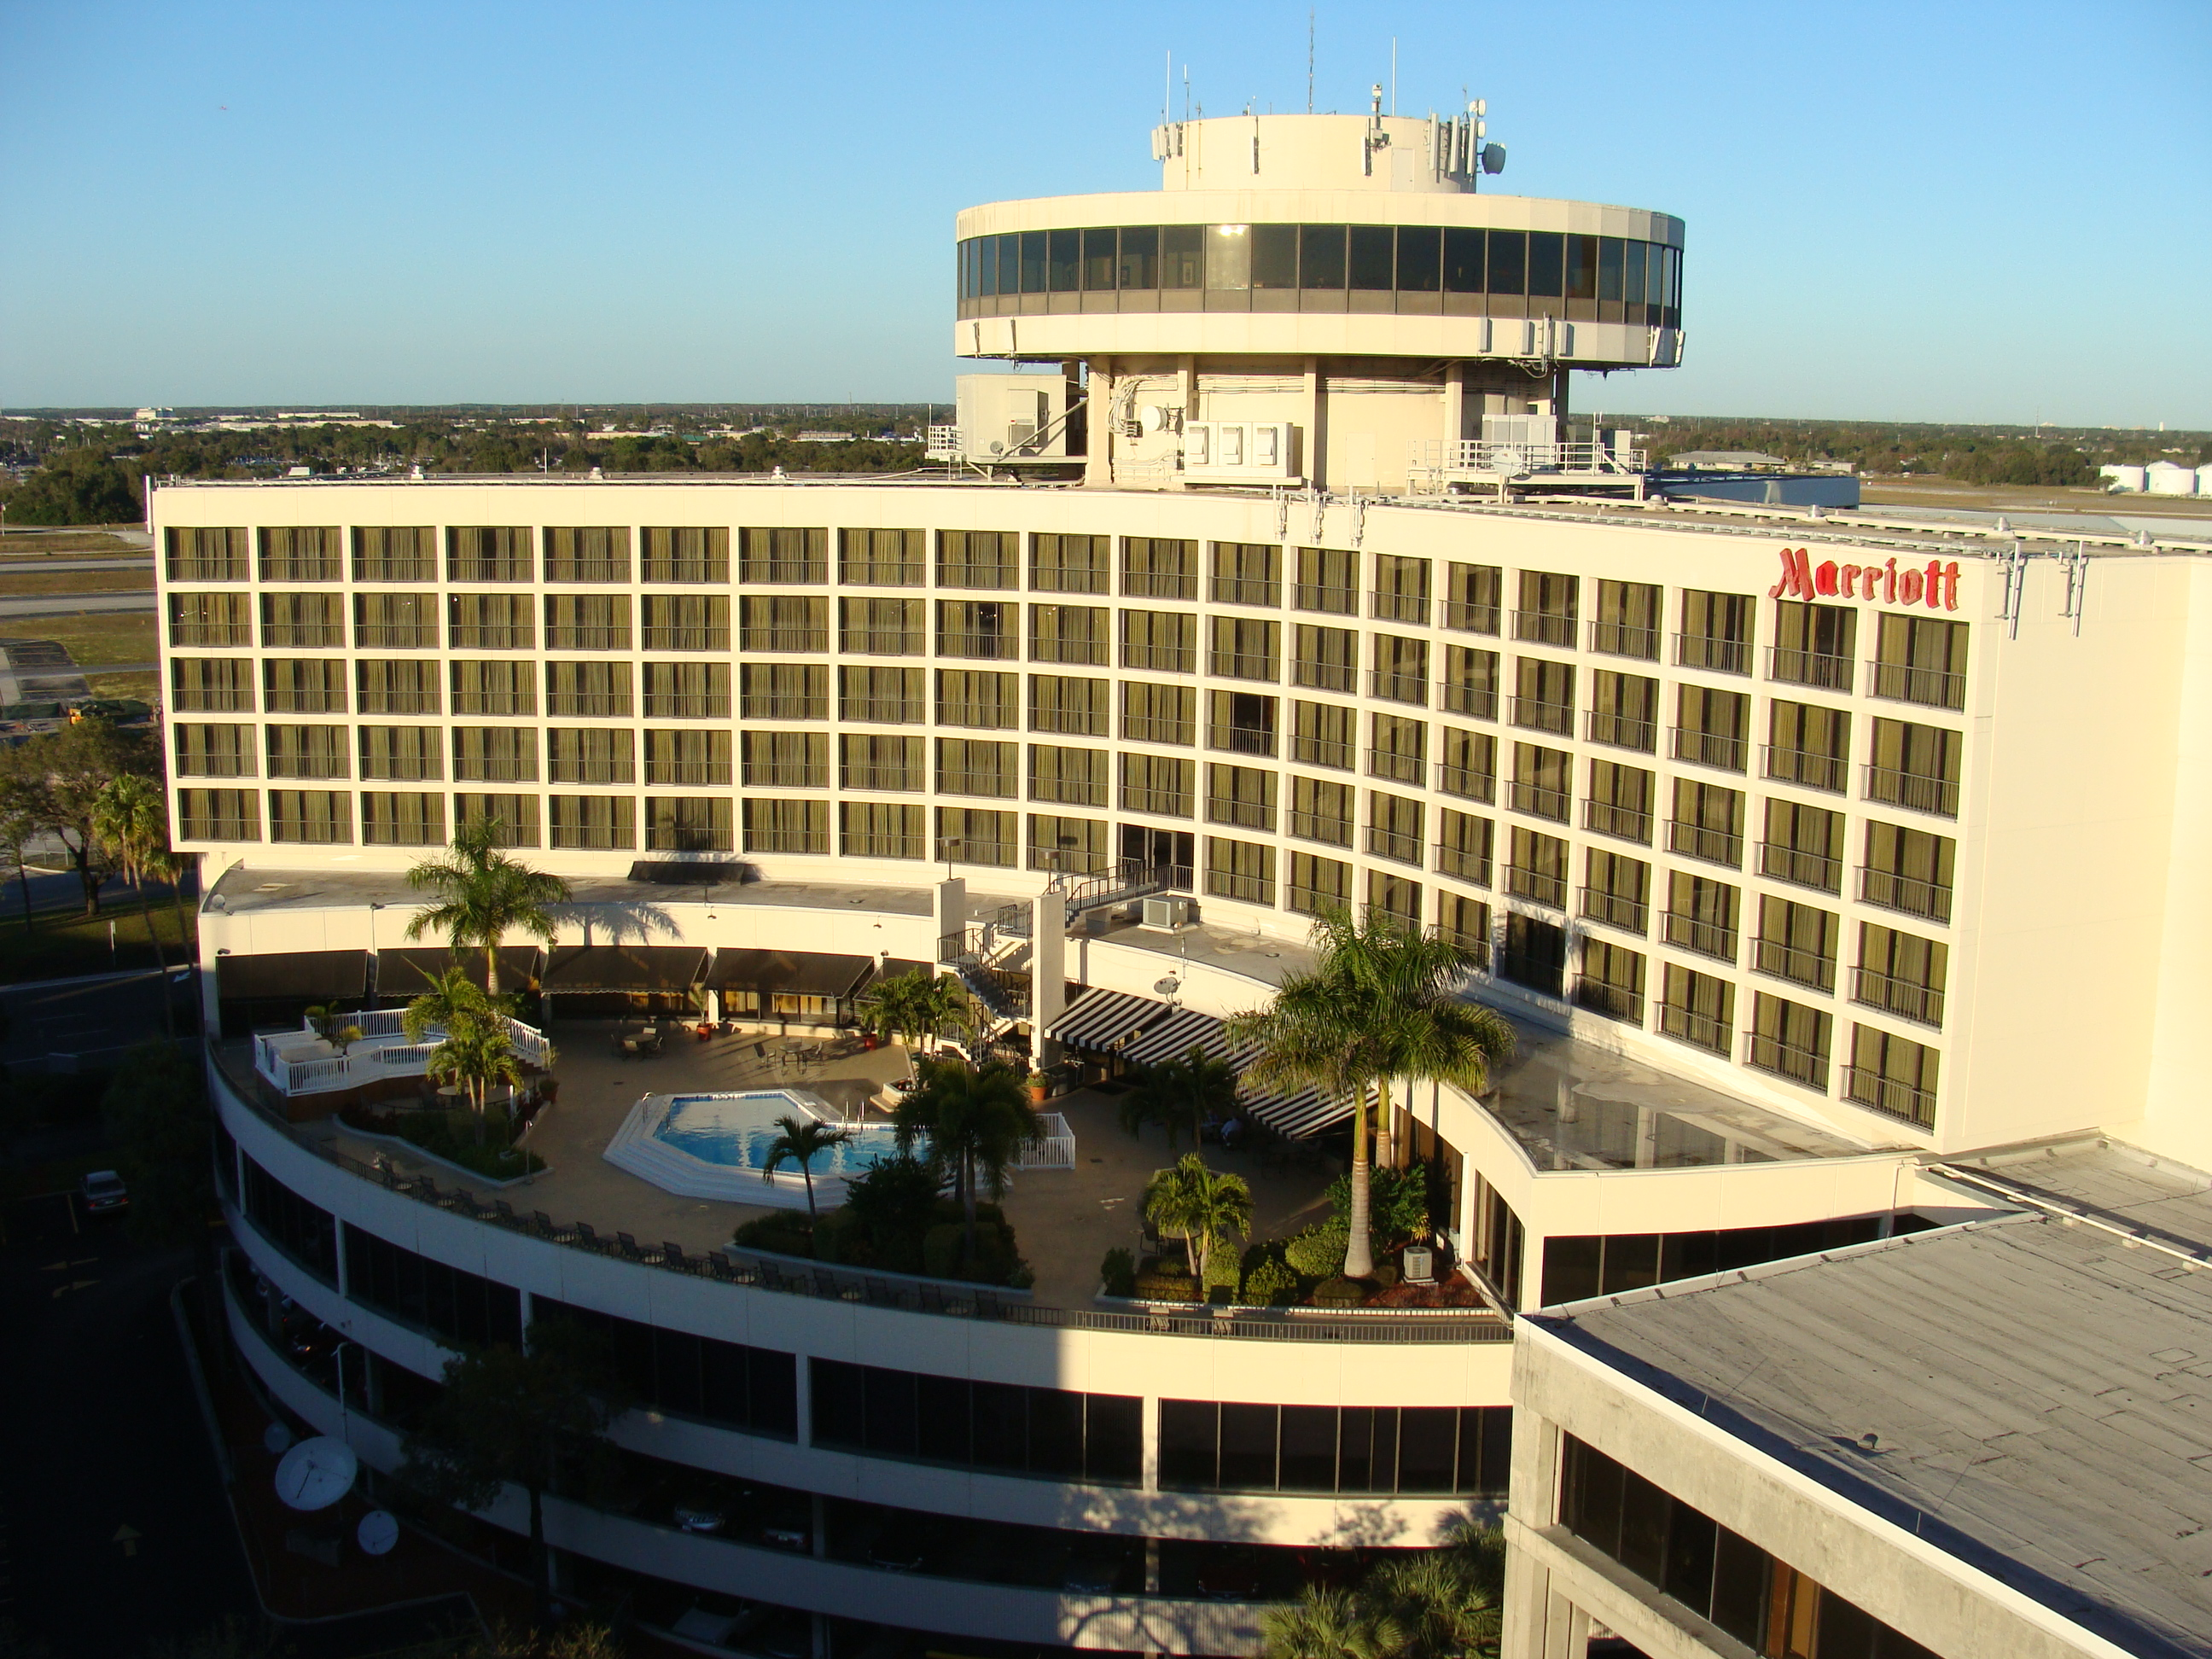 File tpa marriott jpg wikimedia commons for Garage with accommodation